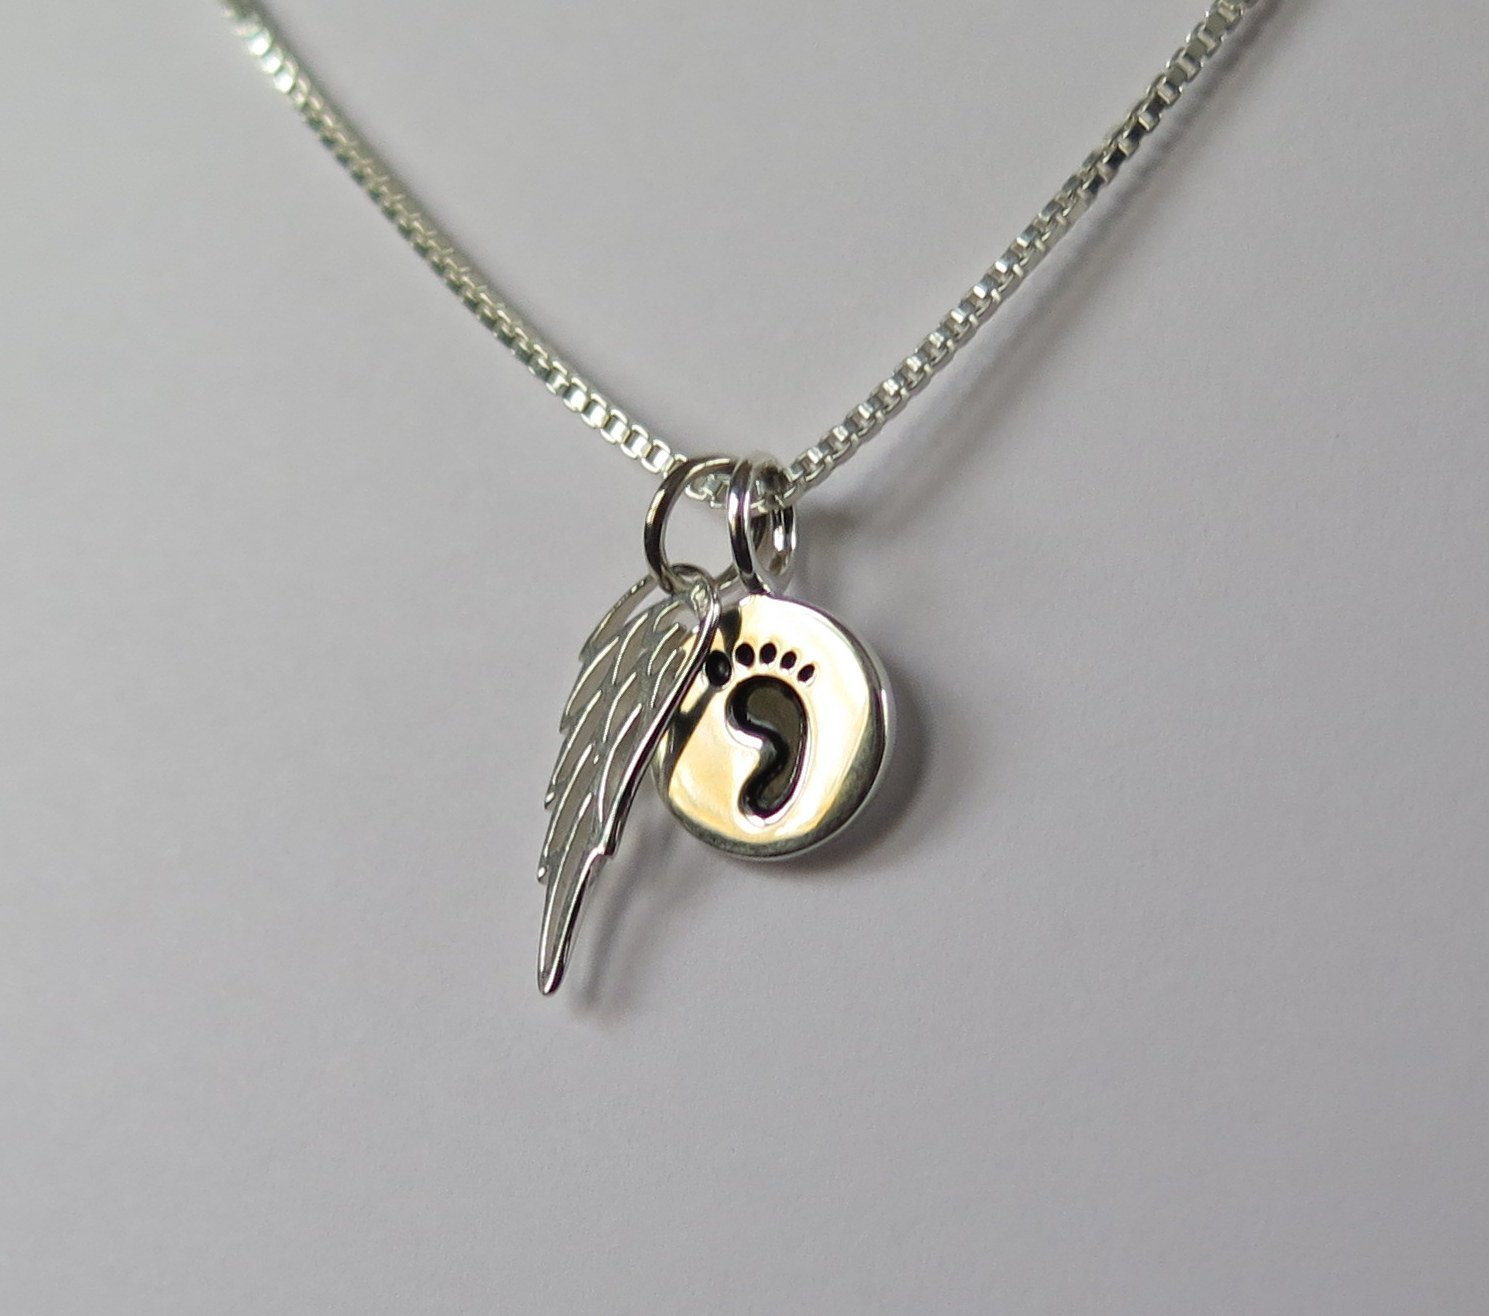 products of remembrance heart my il loss mom miscarriage necklace pregnancy dad fullxfull gift baby in infant forever